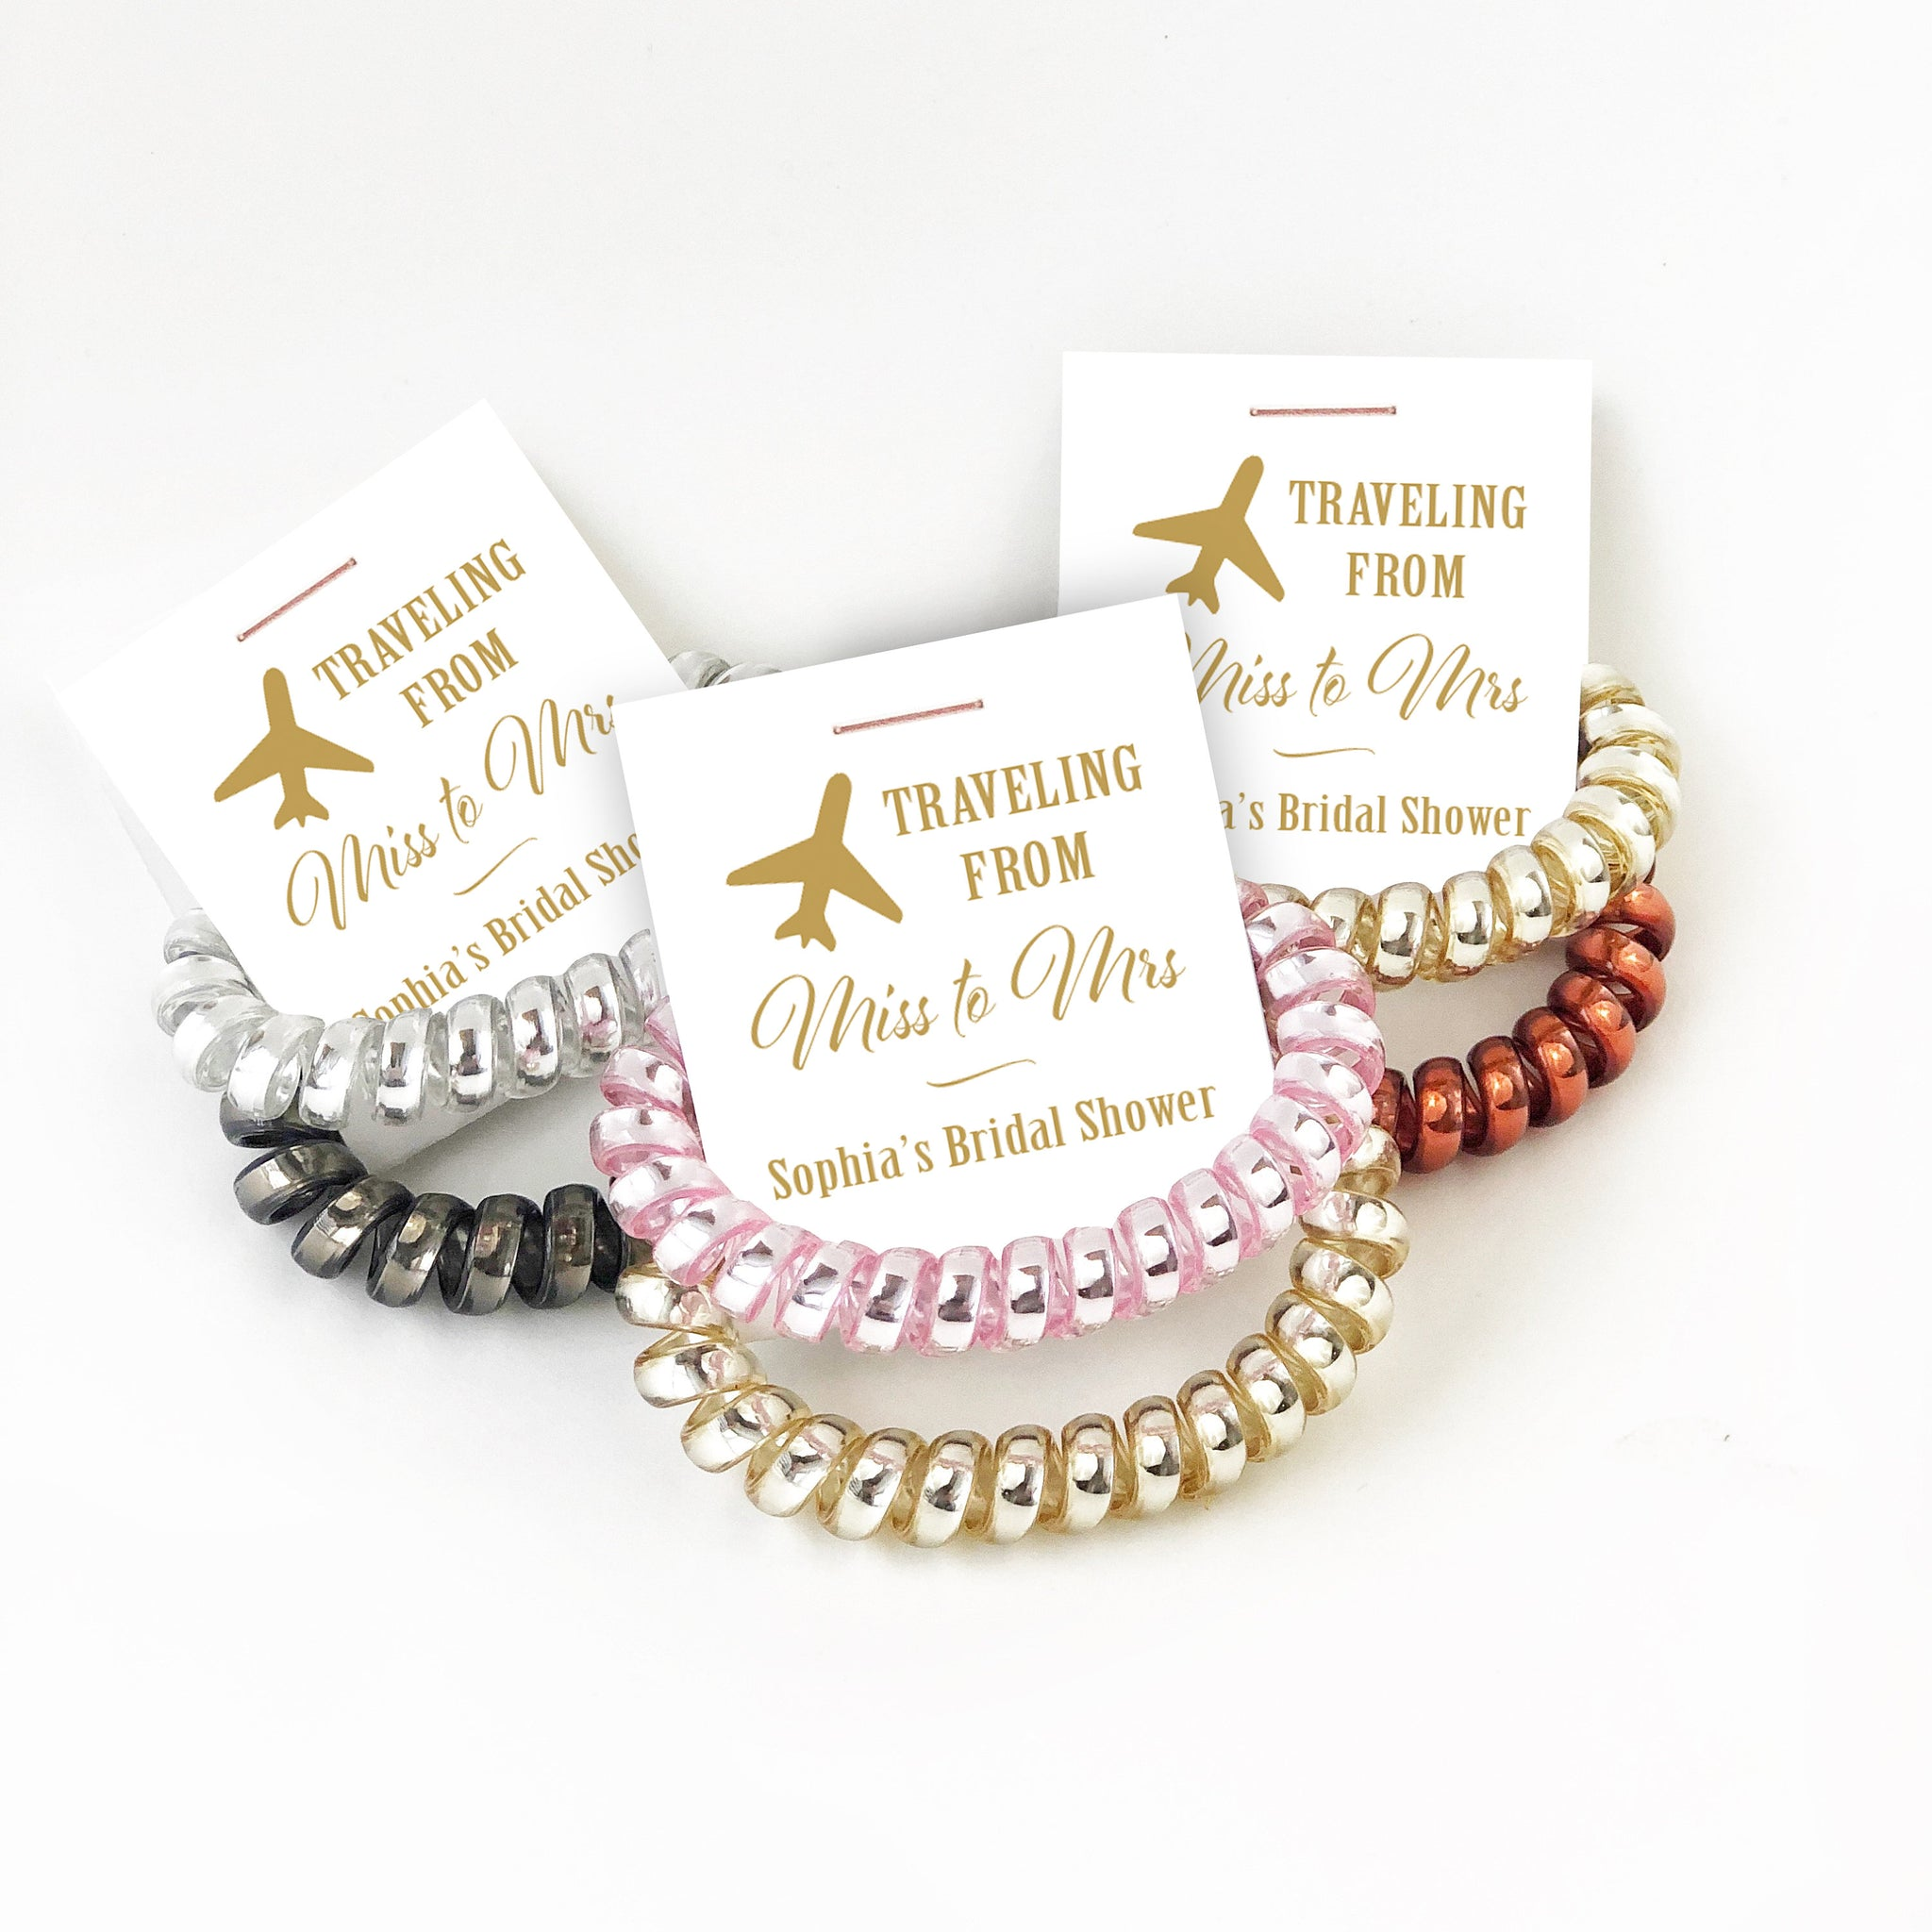 Traveling From Miss to Mrs Bridal Shower Favors, Telephone Cord Spiral Hair Ties, Travel Bridal Shower, Travelling From Miss to Mrs - @PlumPolkaDot